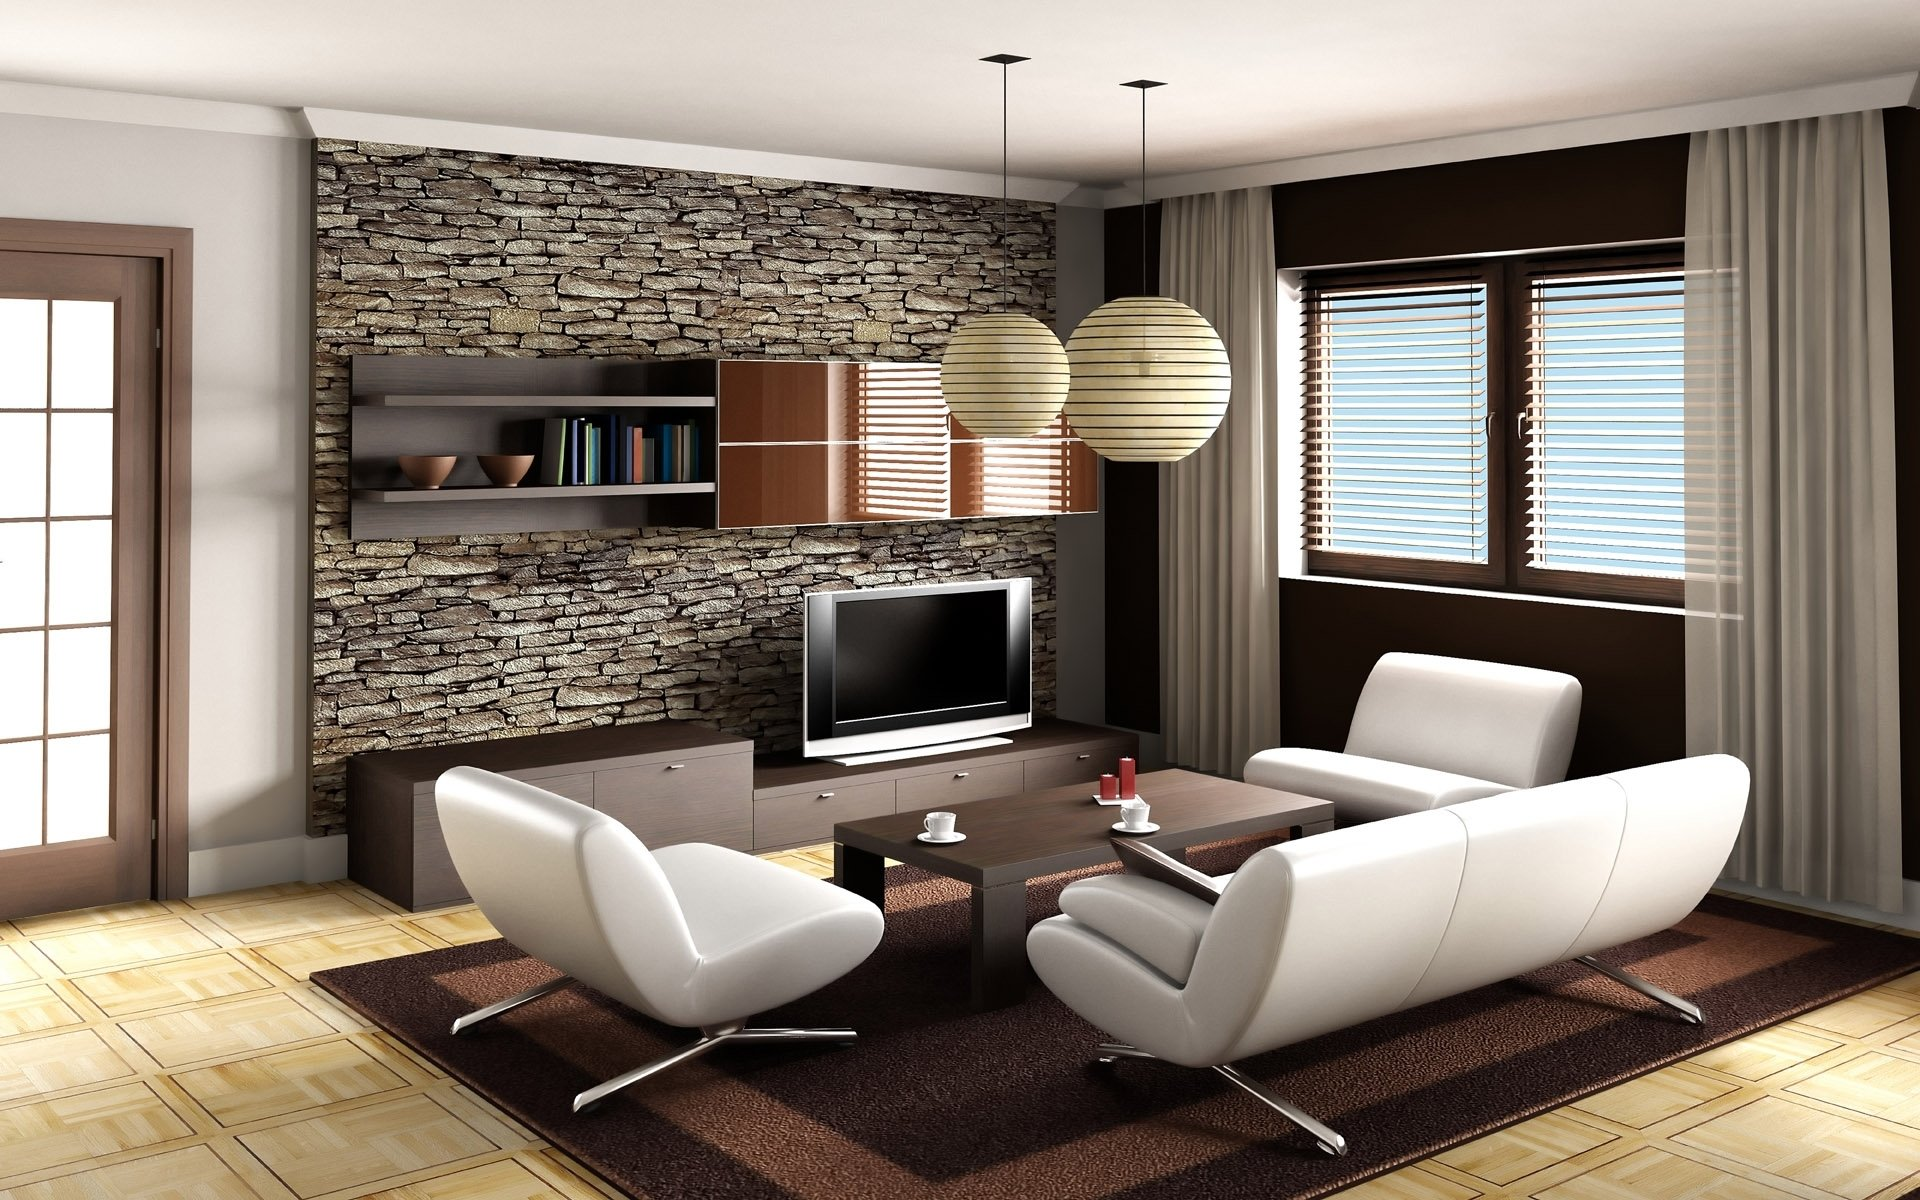 10 Attractive Furniture Ideas For Small Living Room living room furniture living room furniture ideas living room 1